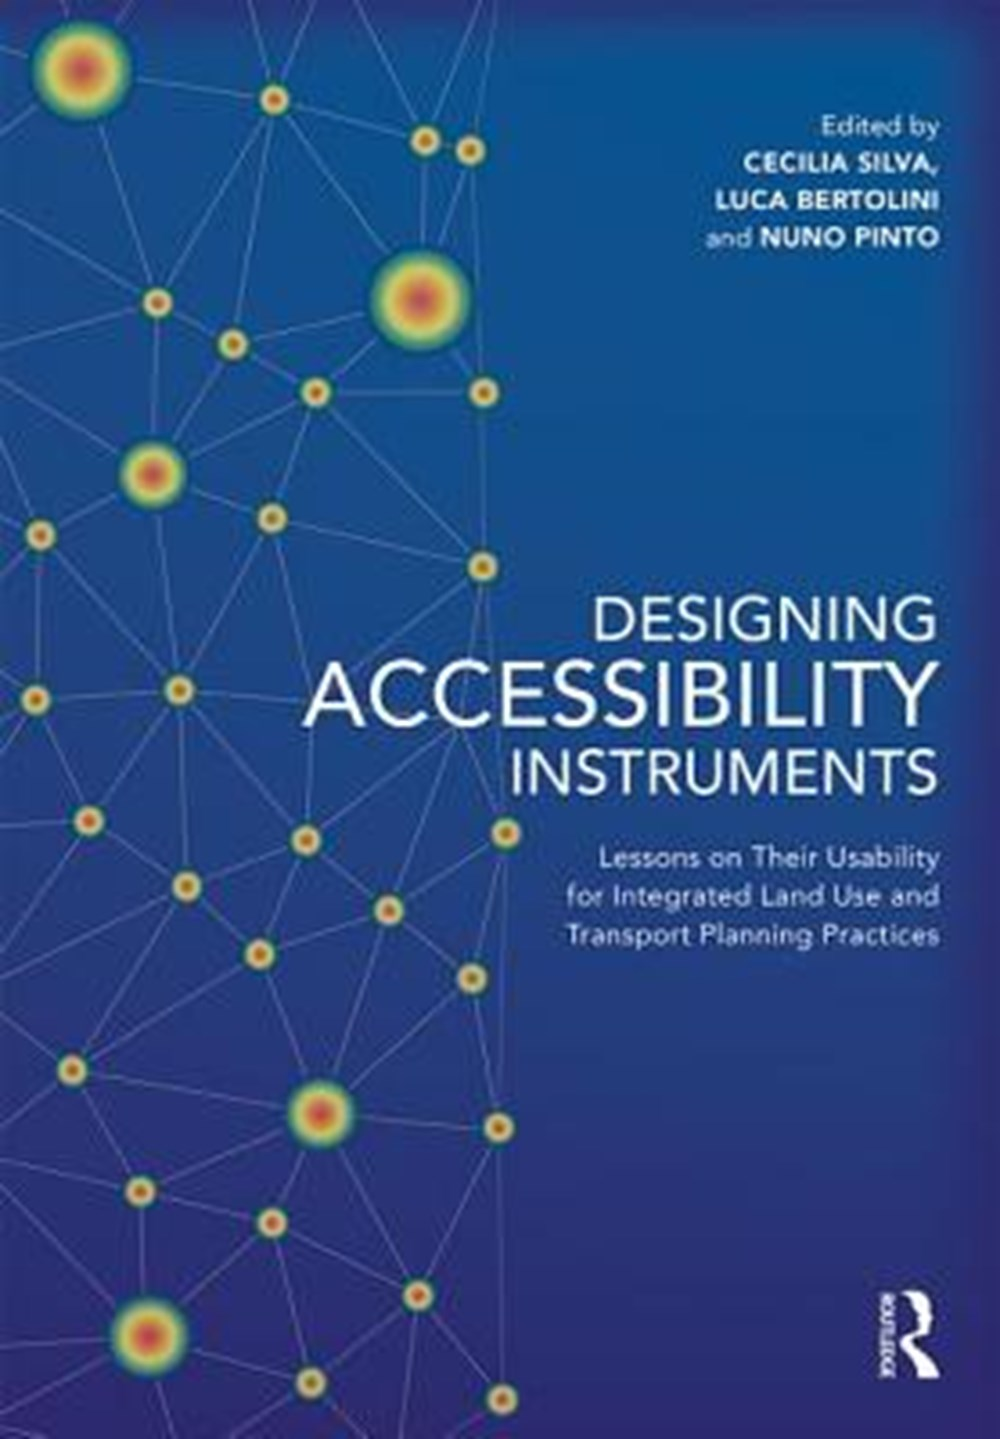 Designing Accessibility Instruments Lessons on Their Usability for Integrated Land Use and Transport